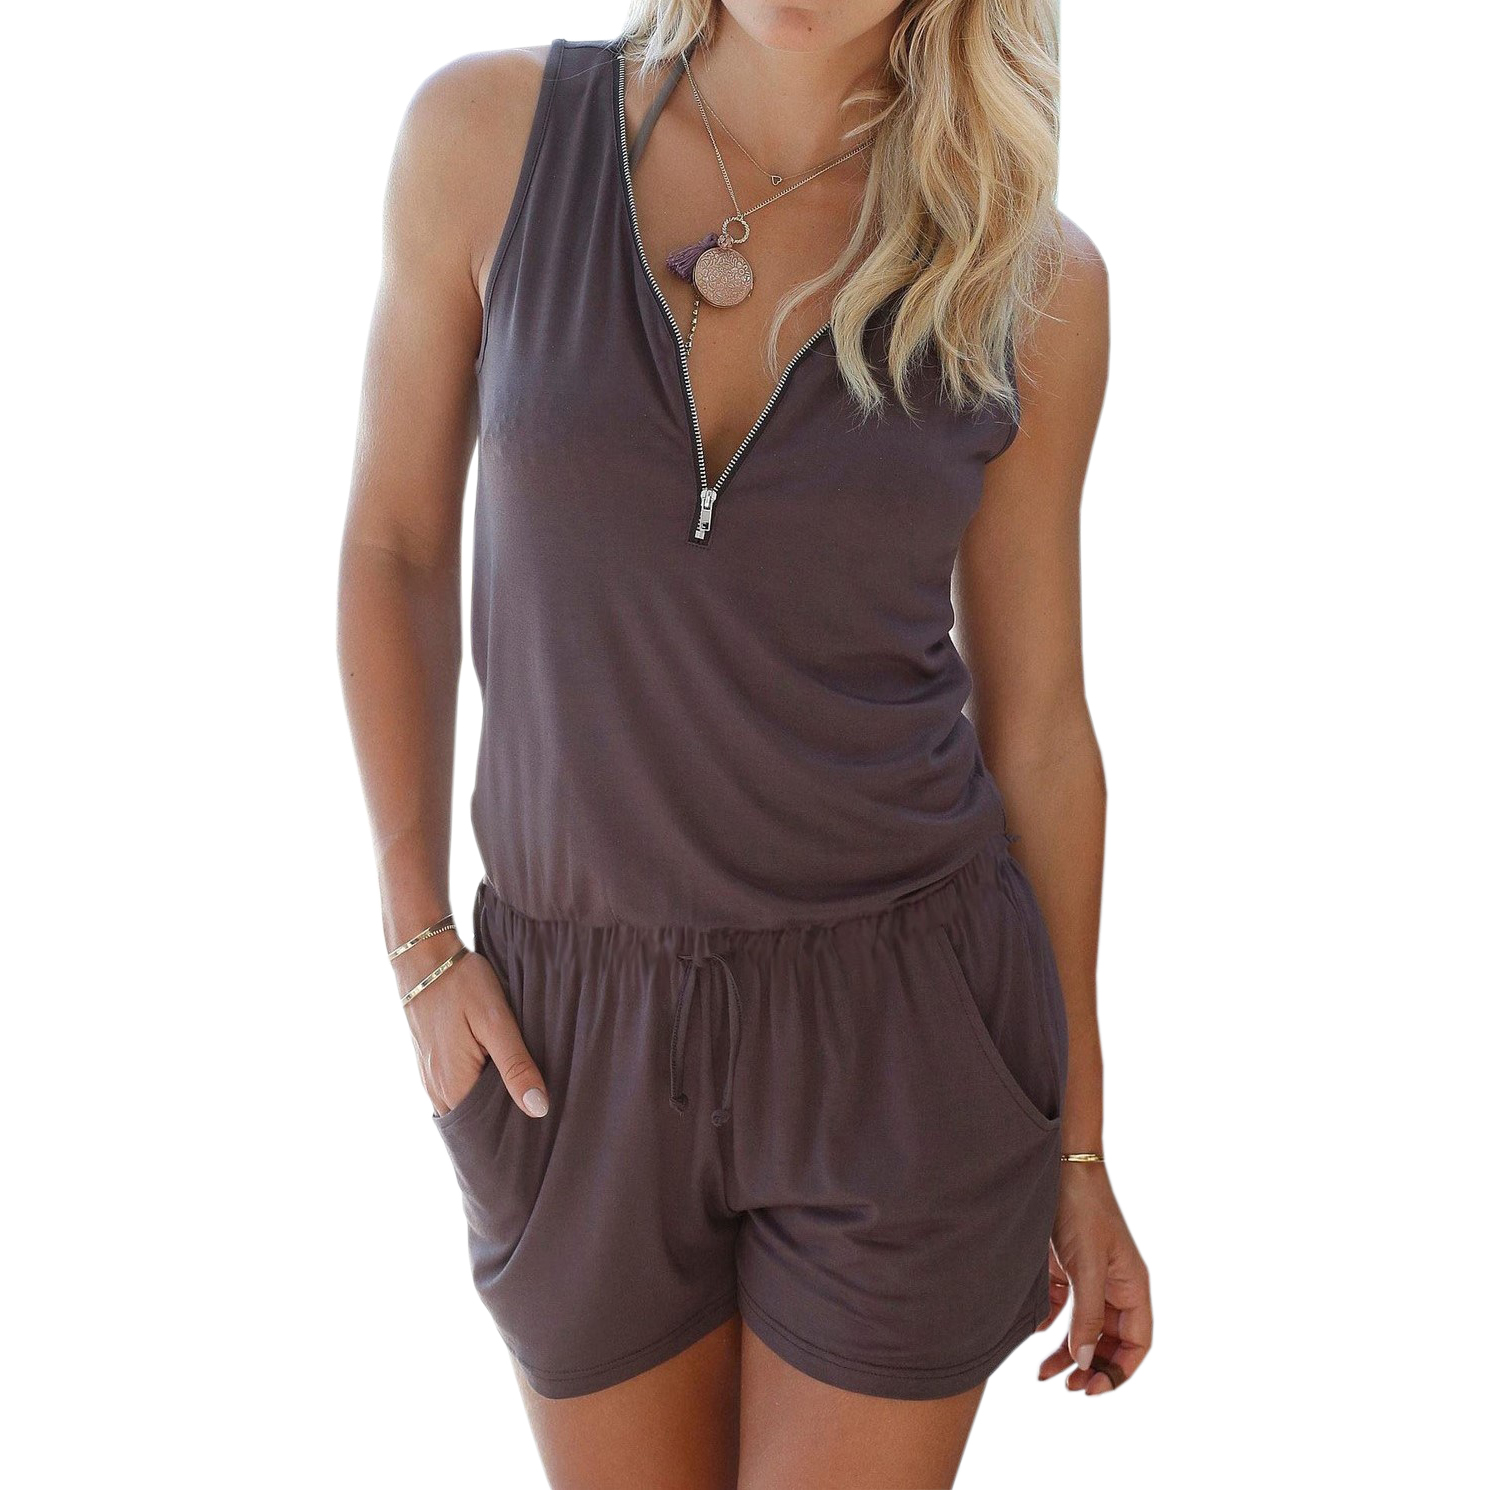 Beach Summer Playsuits Sleeveless V-neck Women   Jumpsuits   Shorts Solid Pockets Zipper Casual Office Playsuits Overalls 4XL GV686